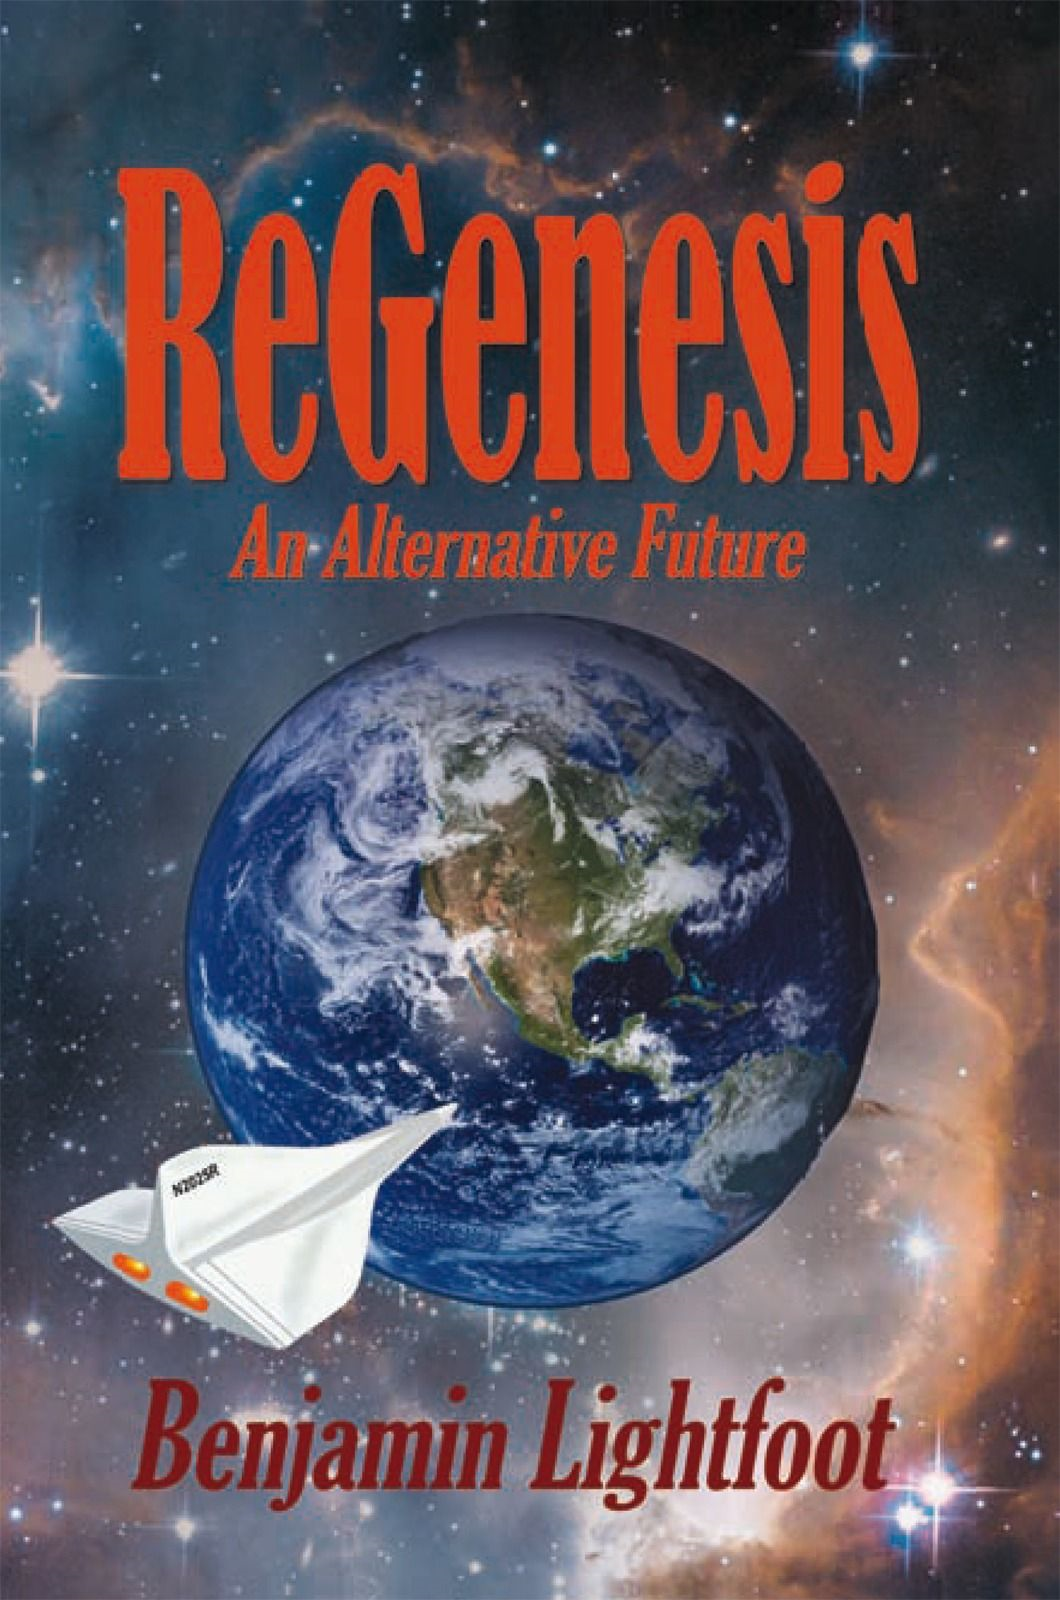 ReGenesis By: Benjamin Lightfoot